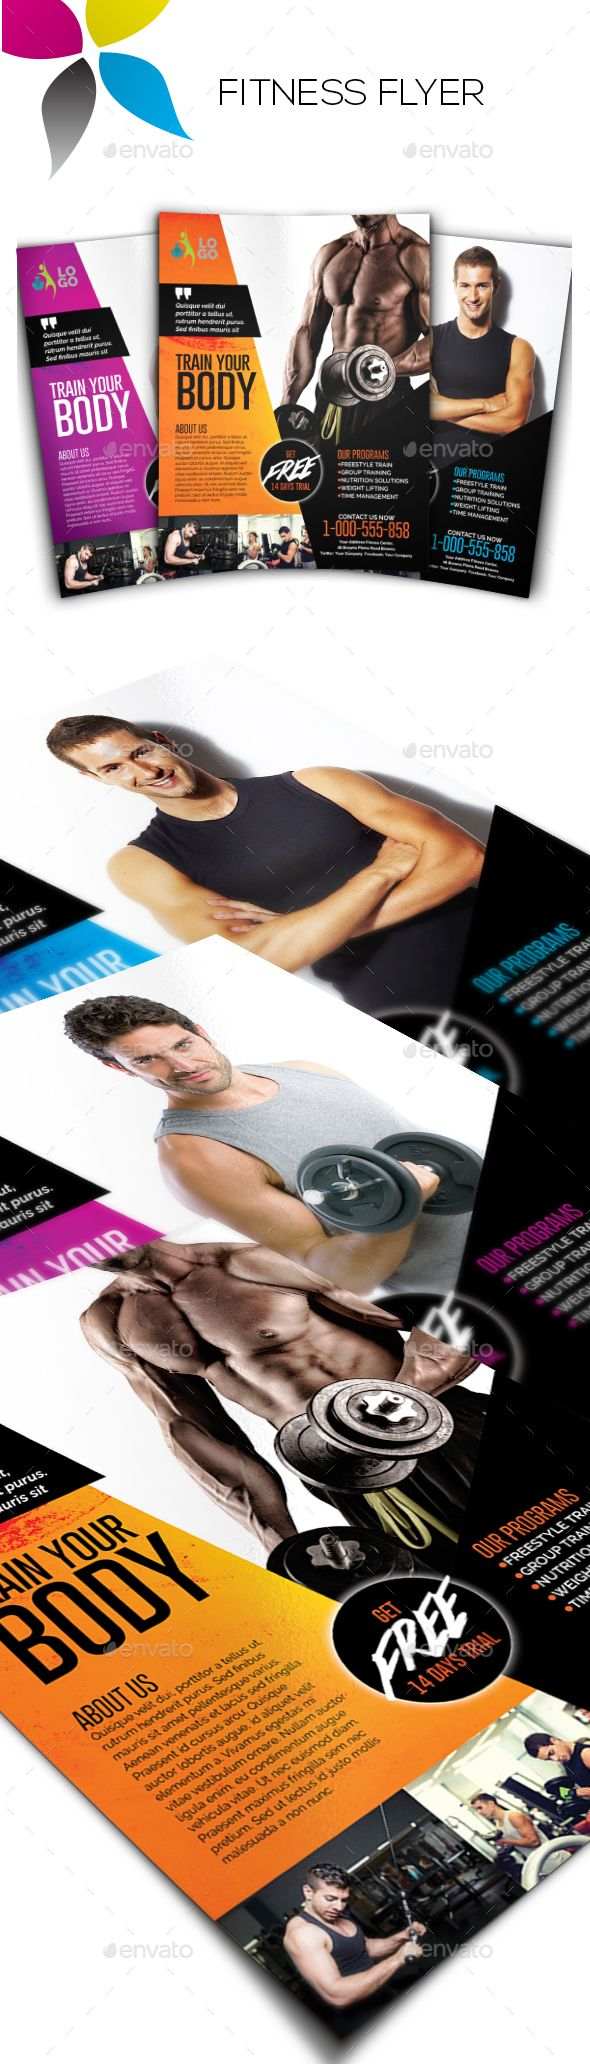 Healthcare-Advertising-Fitness-Flyer-by-inddesigner-A4-210x297mm-US-Letter-8.5x11in-Bleed-5-mm-Adobe-Ph Healthcare Advertising : Fitness Flyer - Sports Events